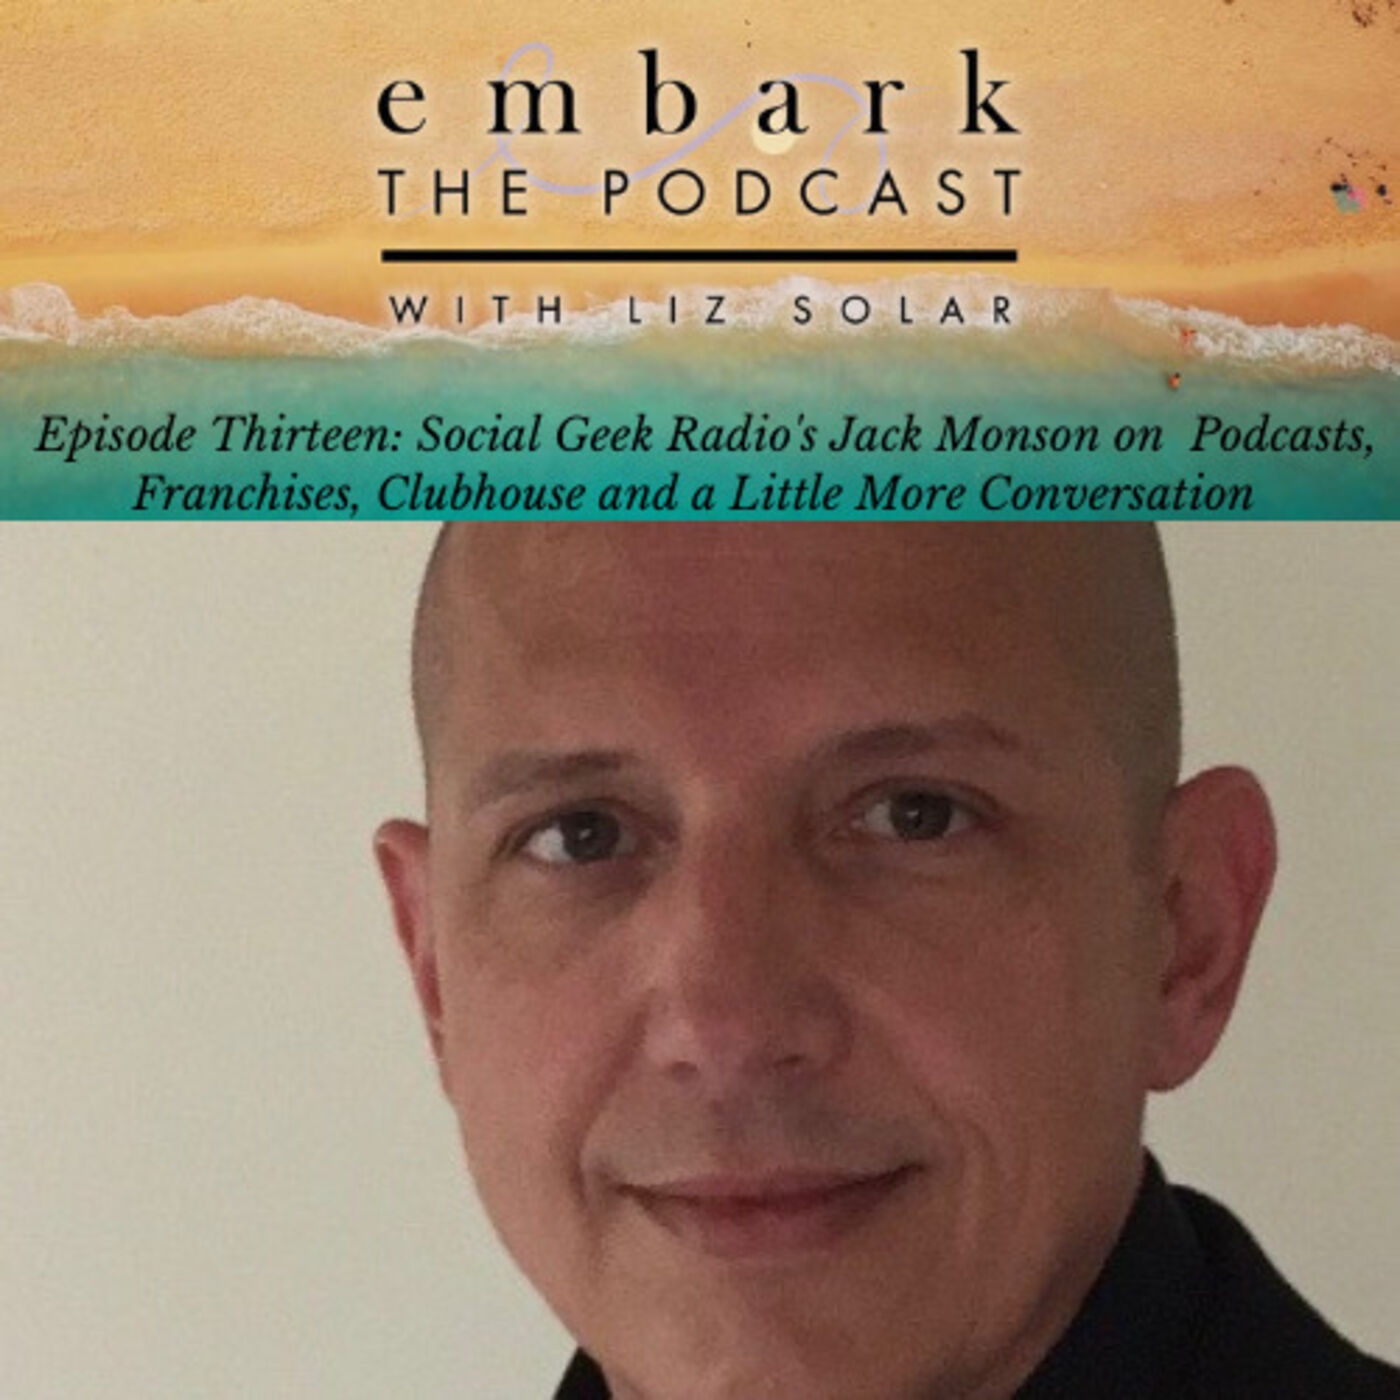 Episode Thirteen: Social Geek Radio's Jack Monson on Podcasts, Franchises, Clubhouse and a Little More Conversation